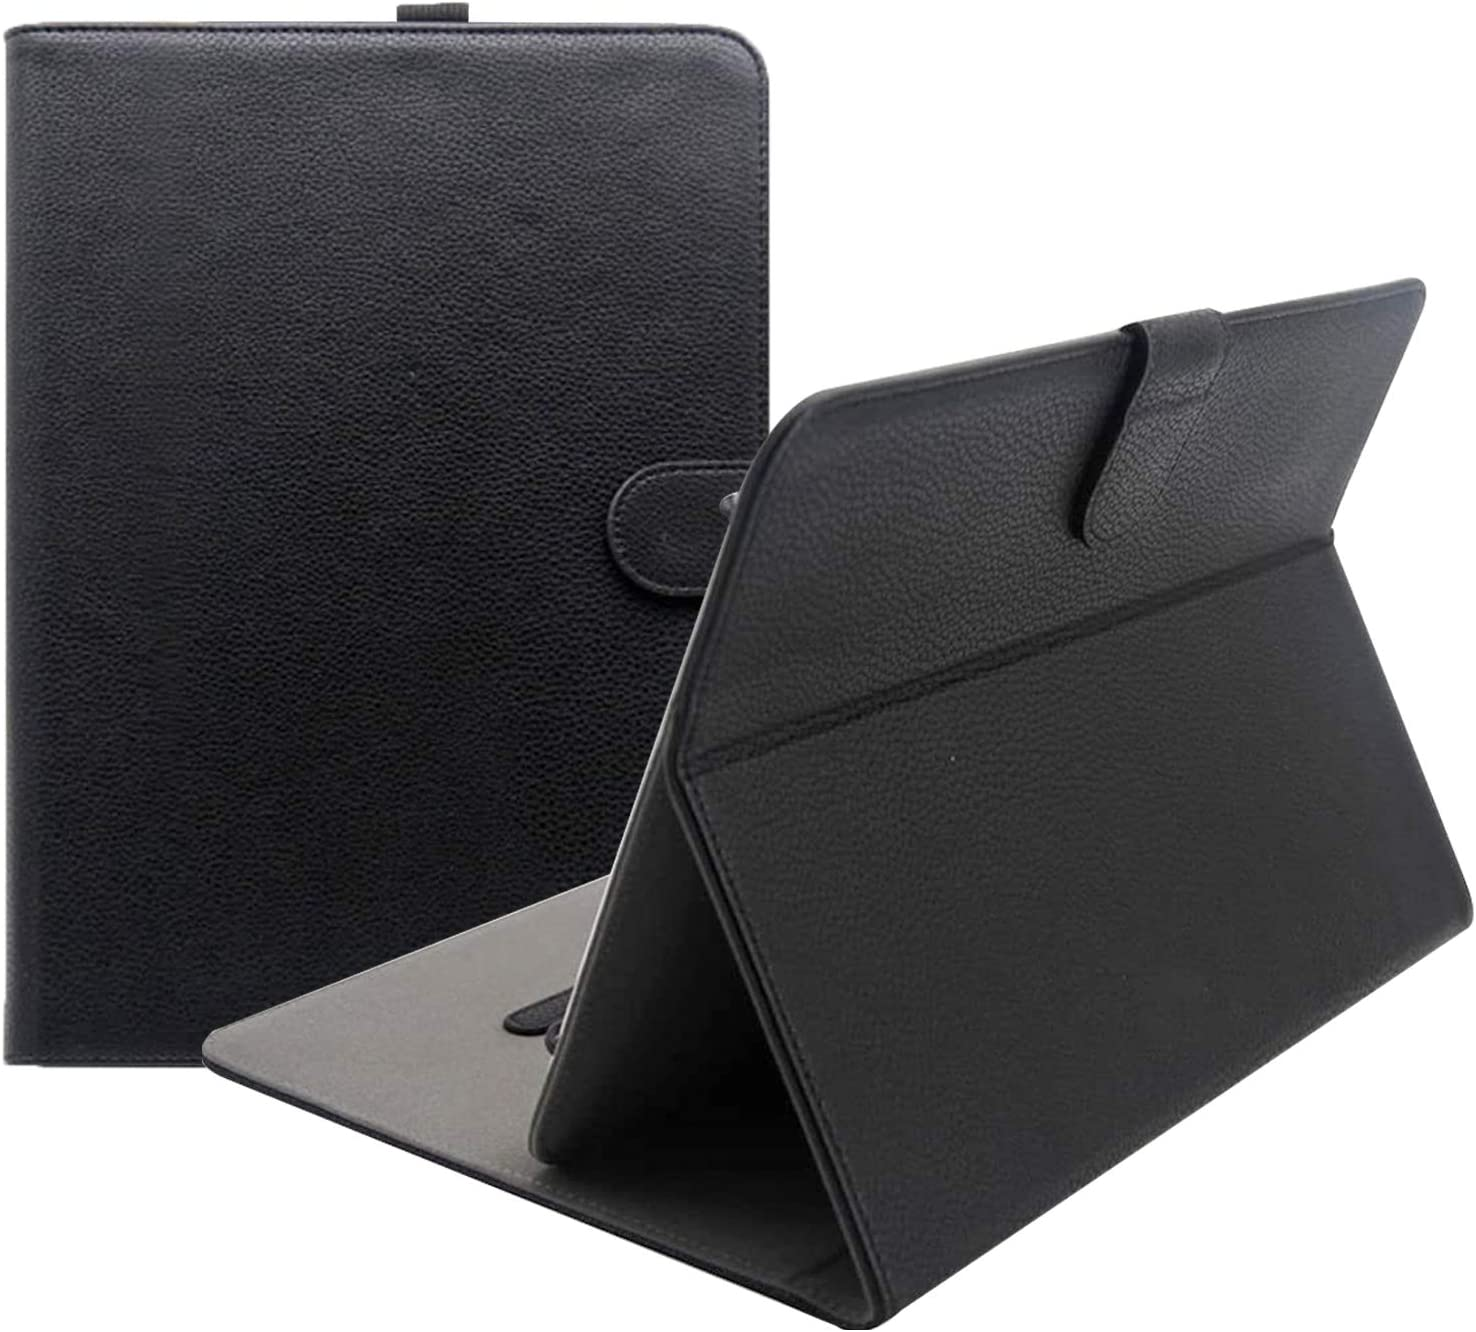 "ProCase Universal Folio Case for 9-10 inch Tablet, Leather Stand Protective Case Cover for 9"" 10.1"""